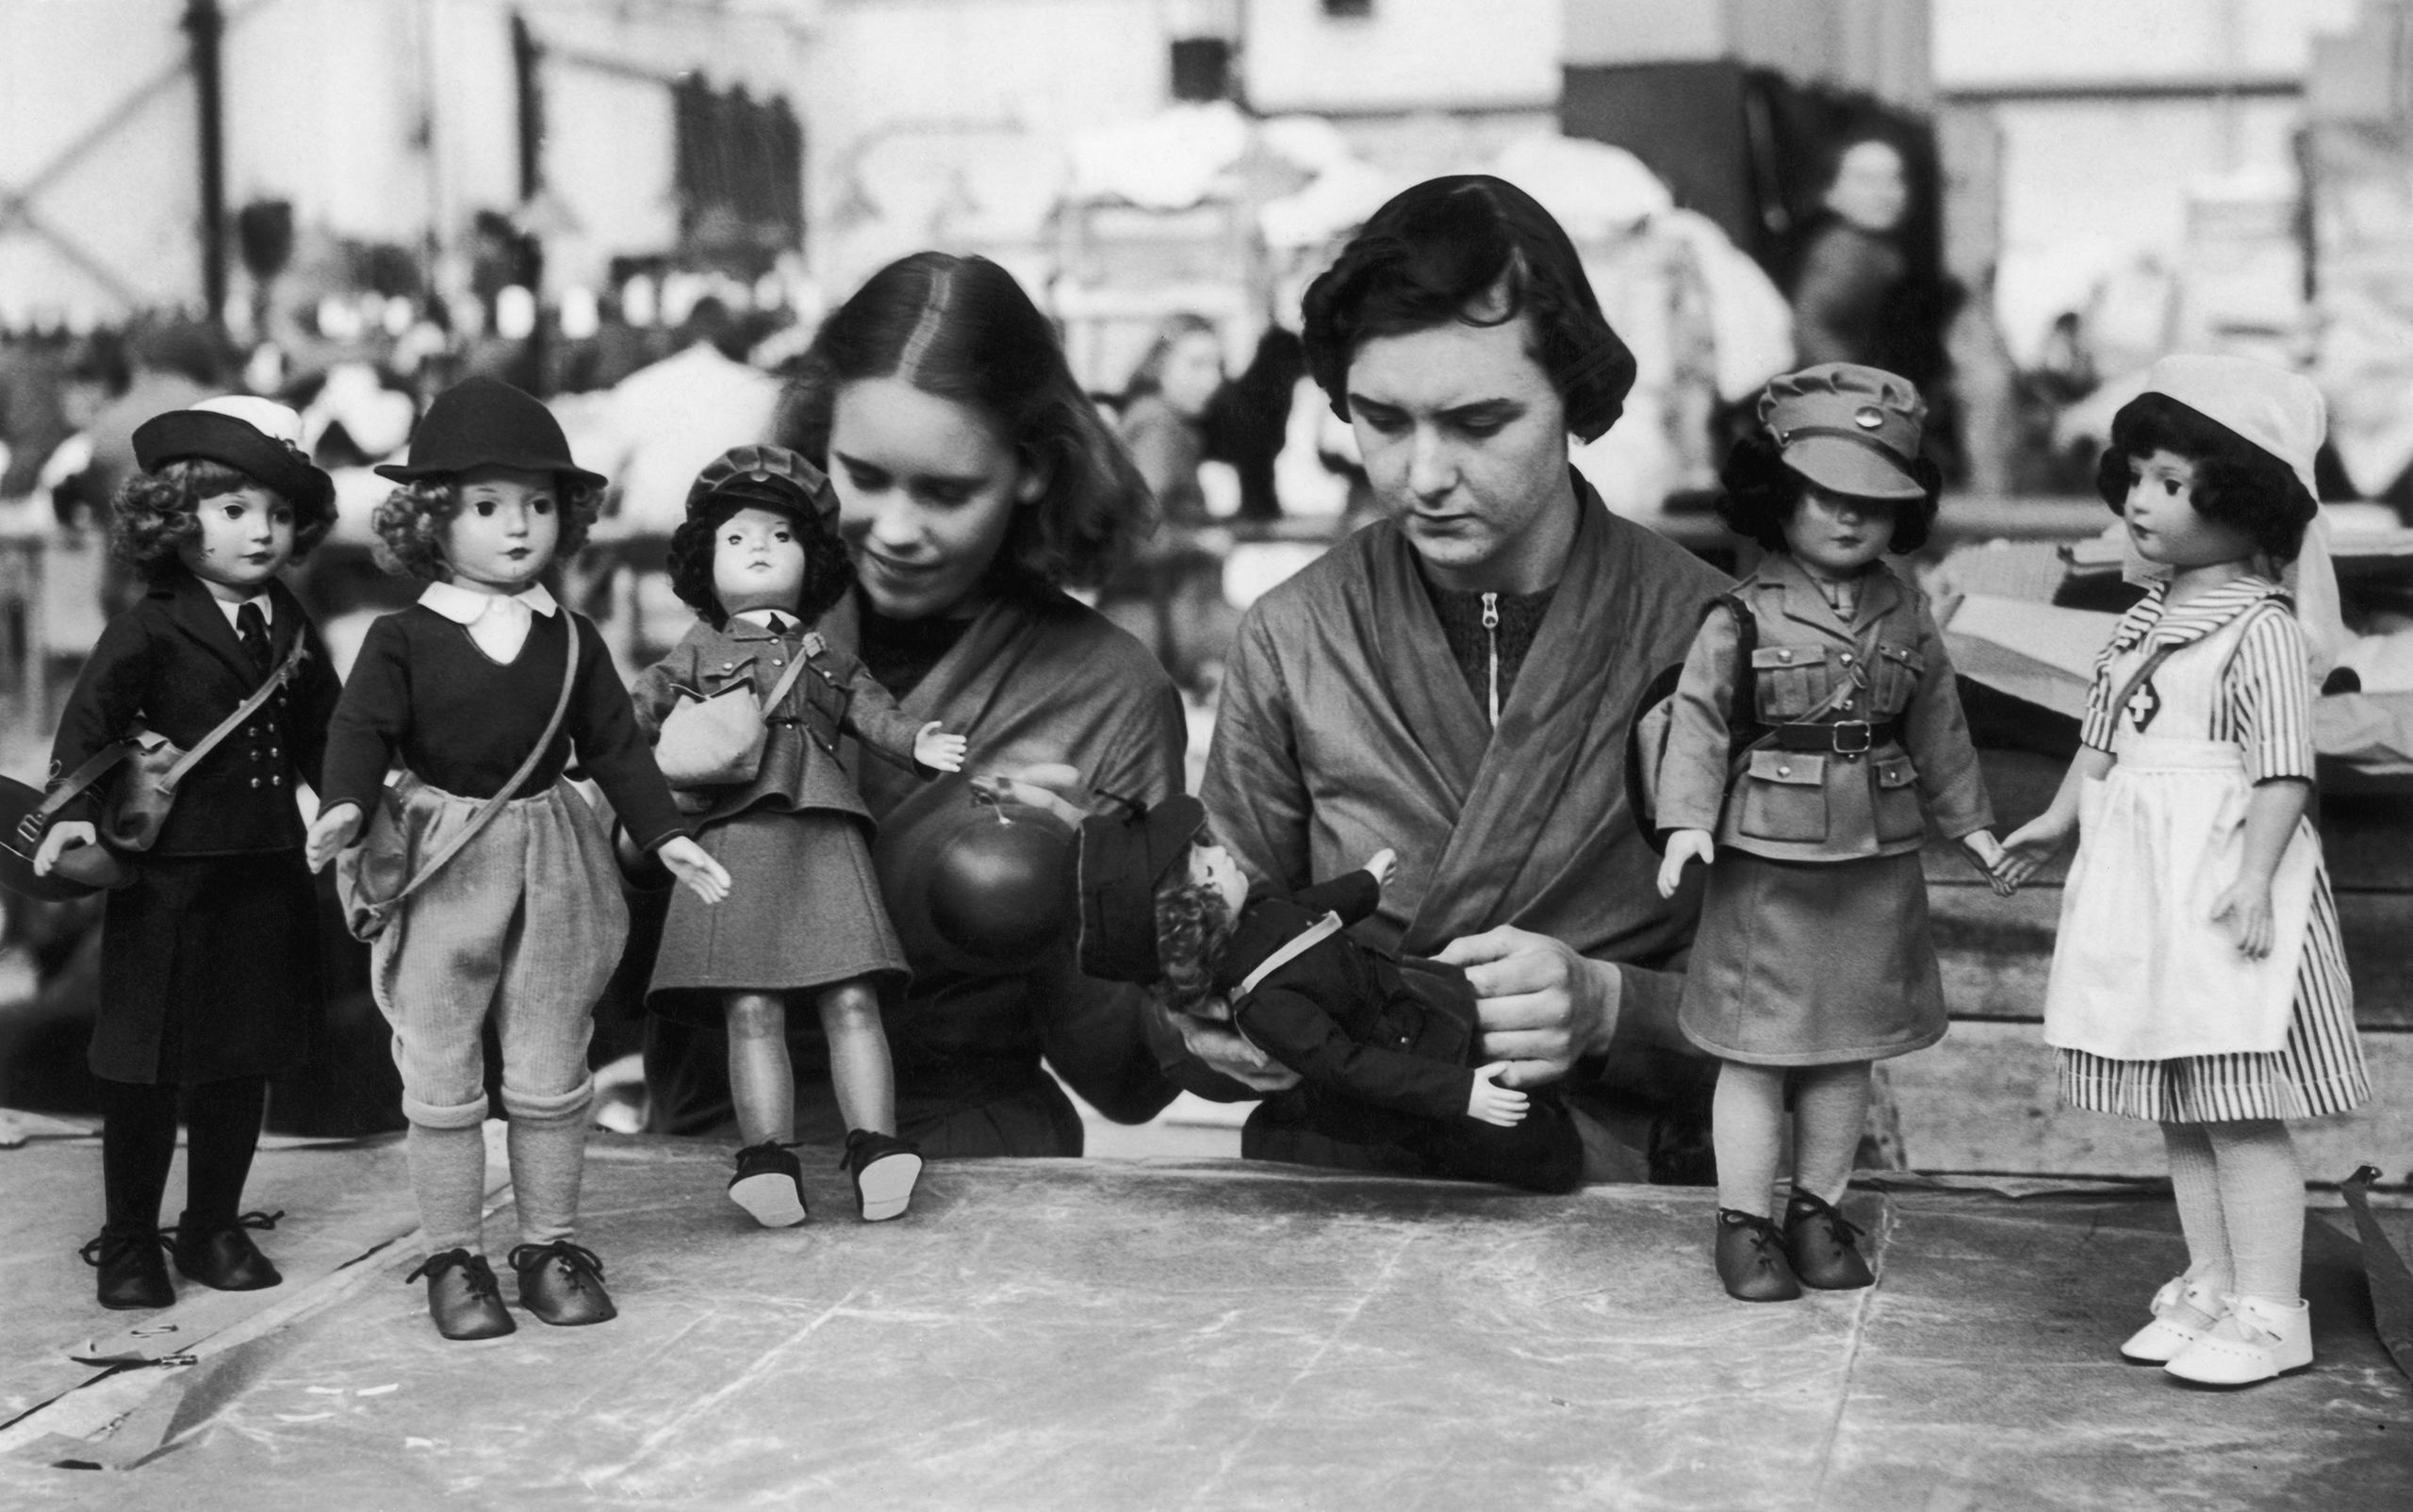 Workers in a British toy factory with dolls dressed in the uniforms of various women's war services—including a style with pants—on Oct. 19, 1939. The toys are being produced in time for the first Christmas of the war.